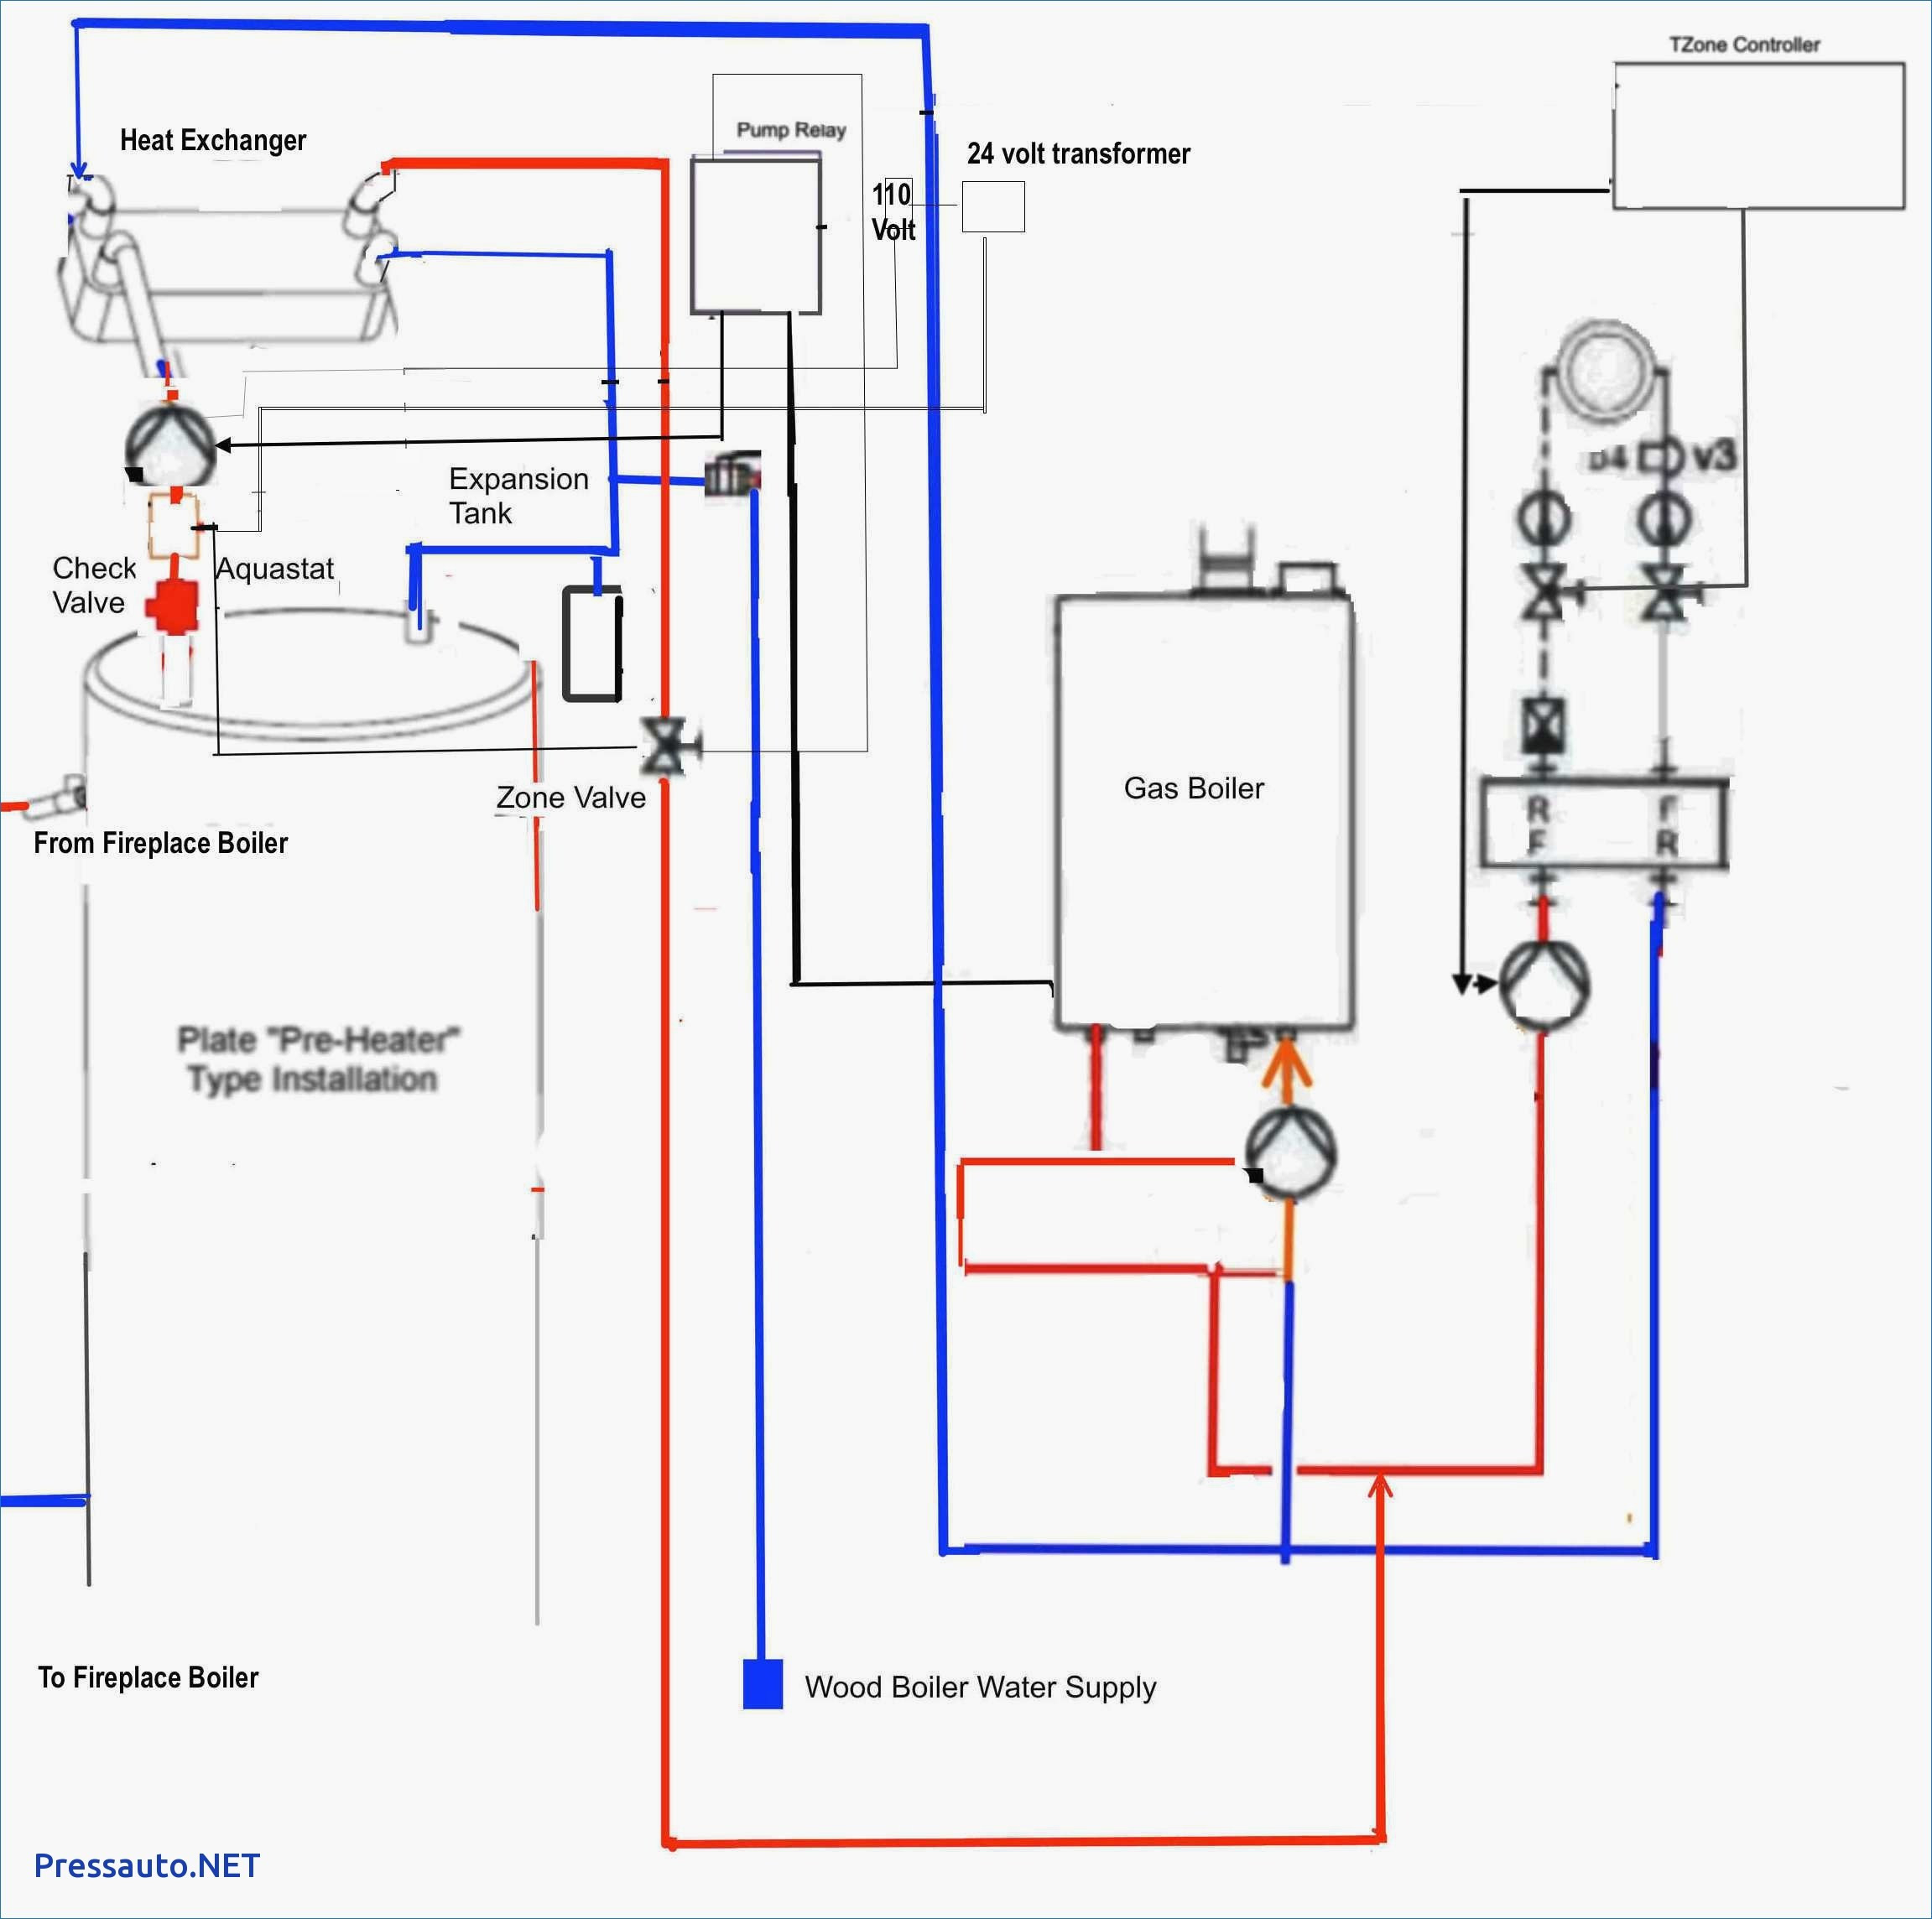 furnace transformer wiring diagram Download-Furnace Transformer Wiring Diagram Best Solutions In 20-r